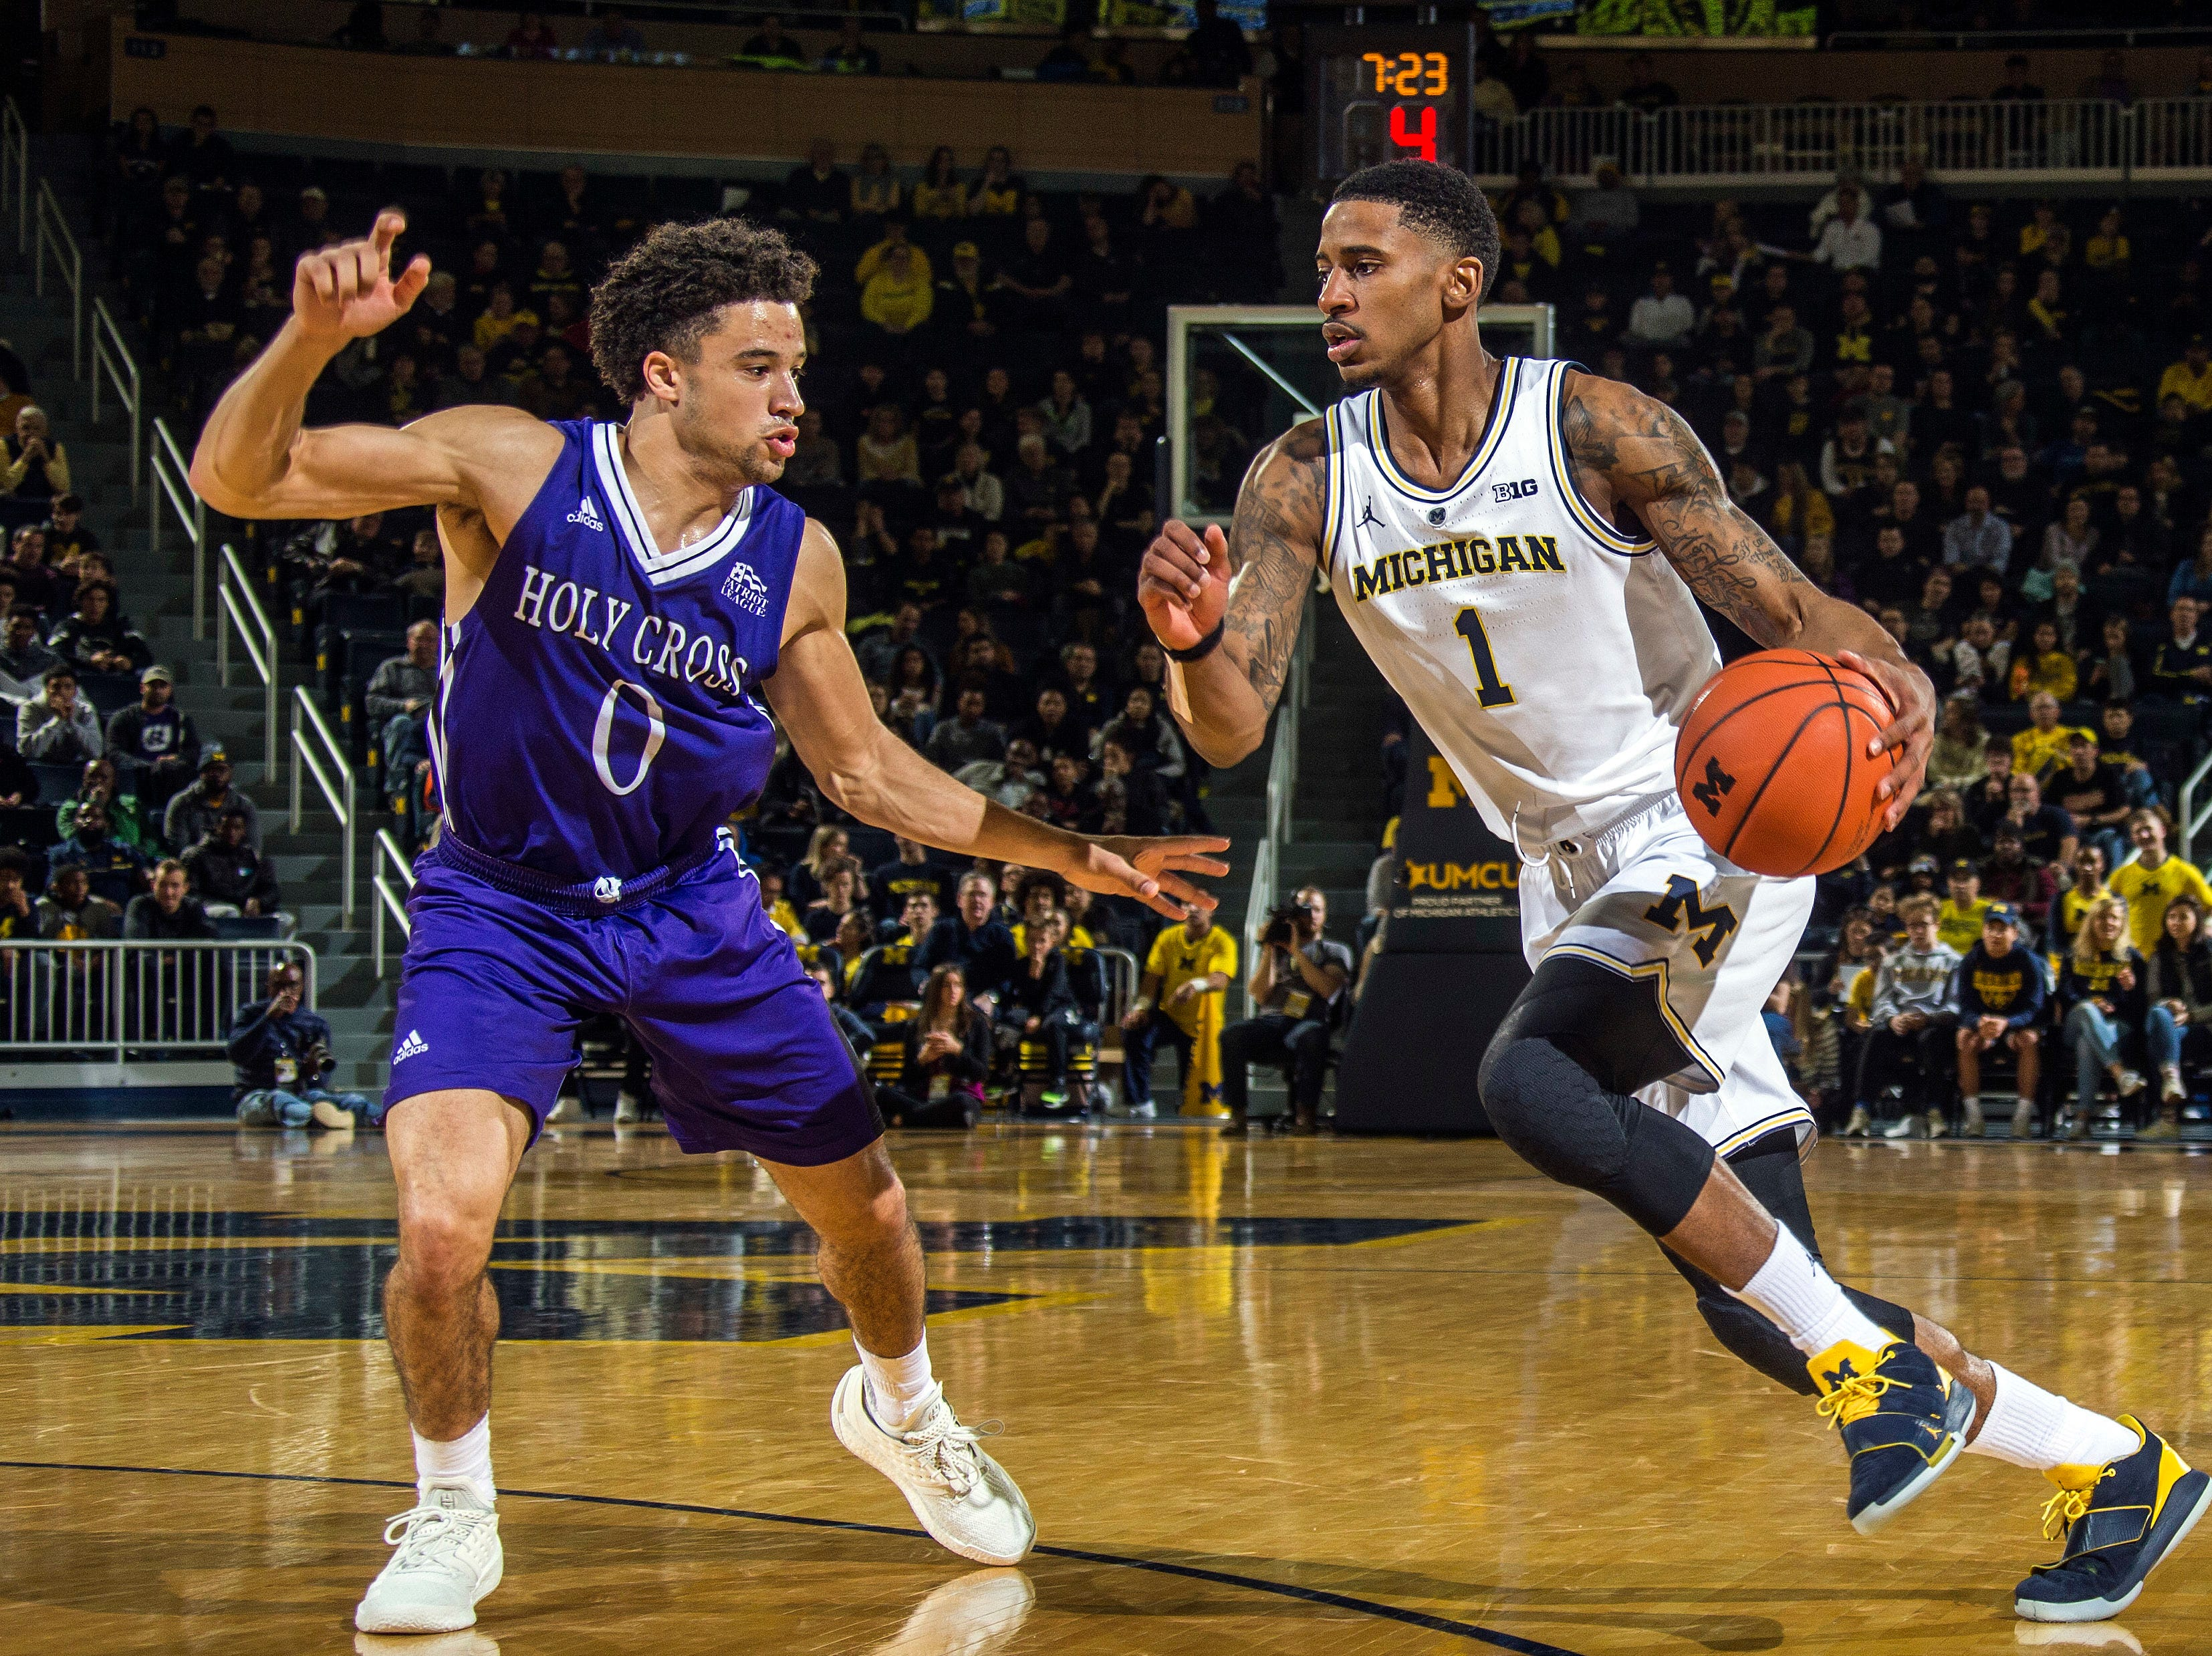 Holy Cross guard Caleb Green (0) defends against Michigan guard Charles Matthews (1) during the first half of an NCAA college basketball game in Ann Arbor, Mich., Saturday, Nov. 10, 2018. (AP Photo/Tony Ding)